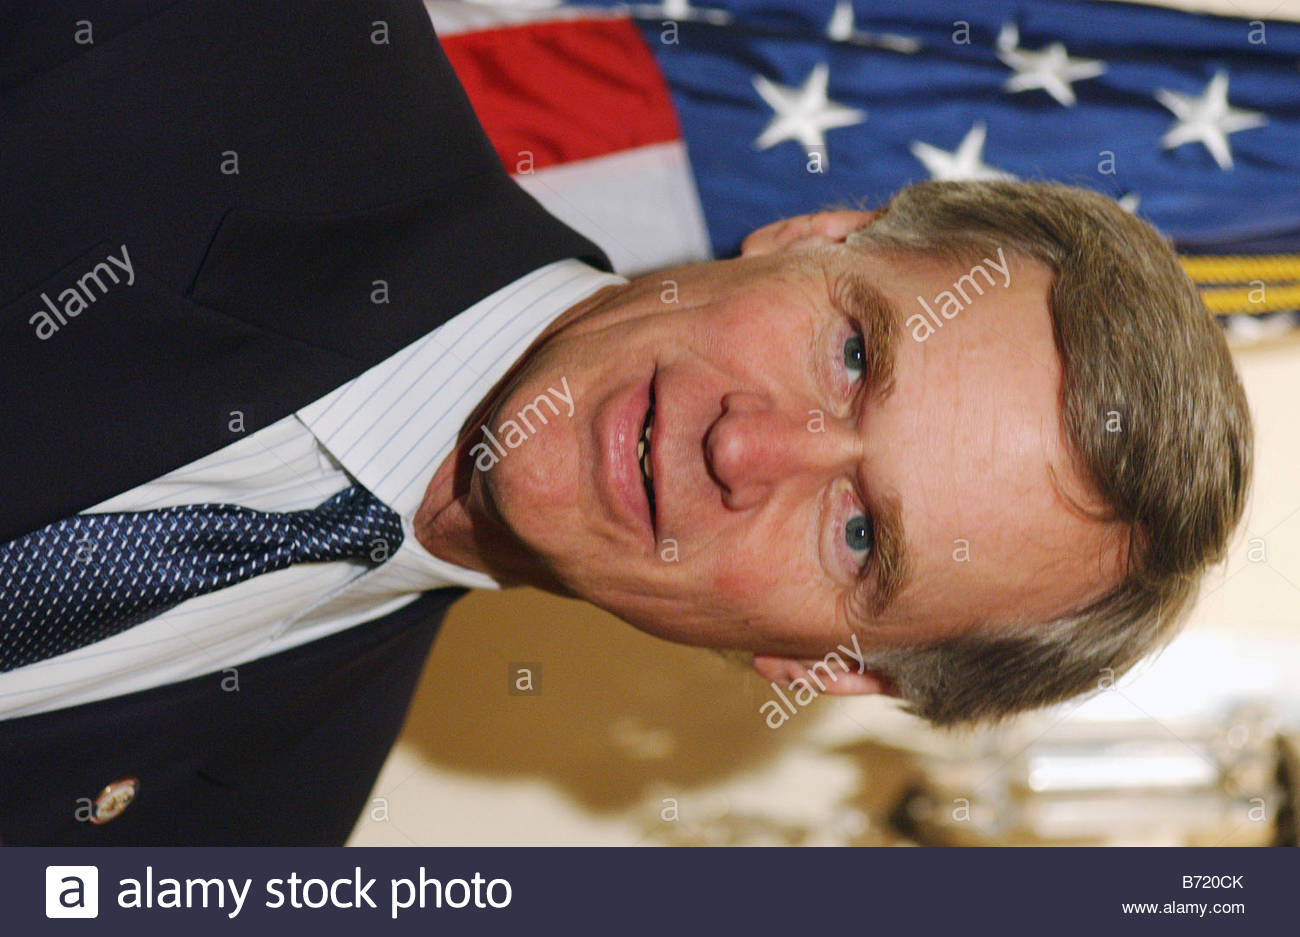 1 7 03 U S Rep Ander Crenshaw R Fla during a mock swearing in with House Speaker J Dennis Hastert R Ill CONGRESSIONAL - Stock Image